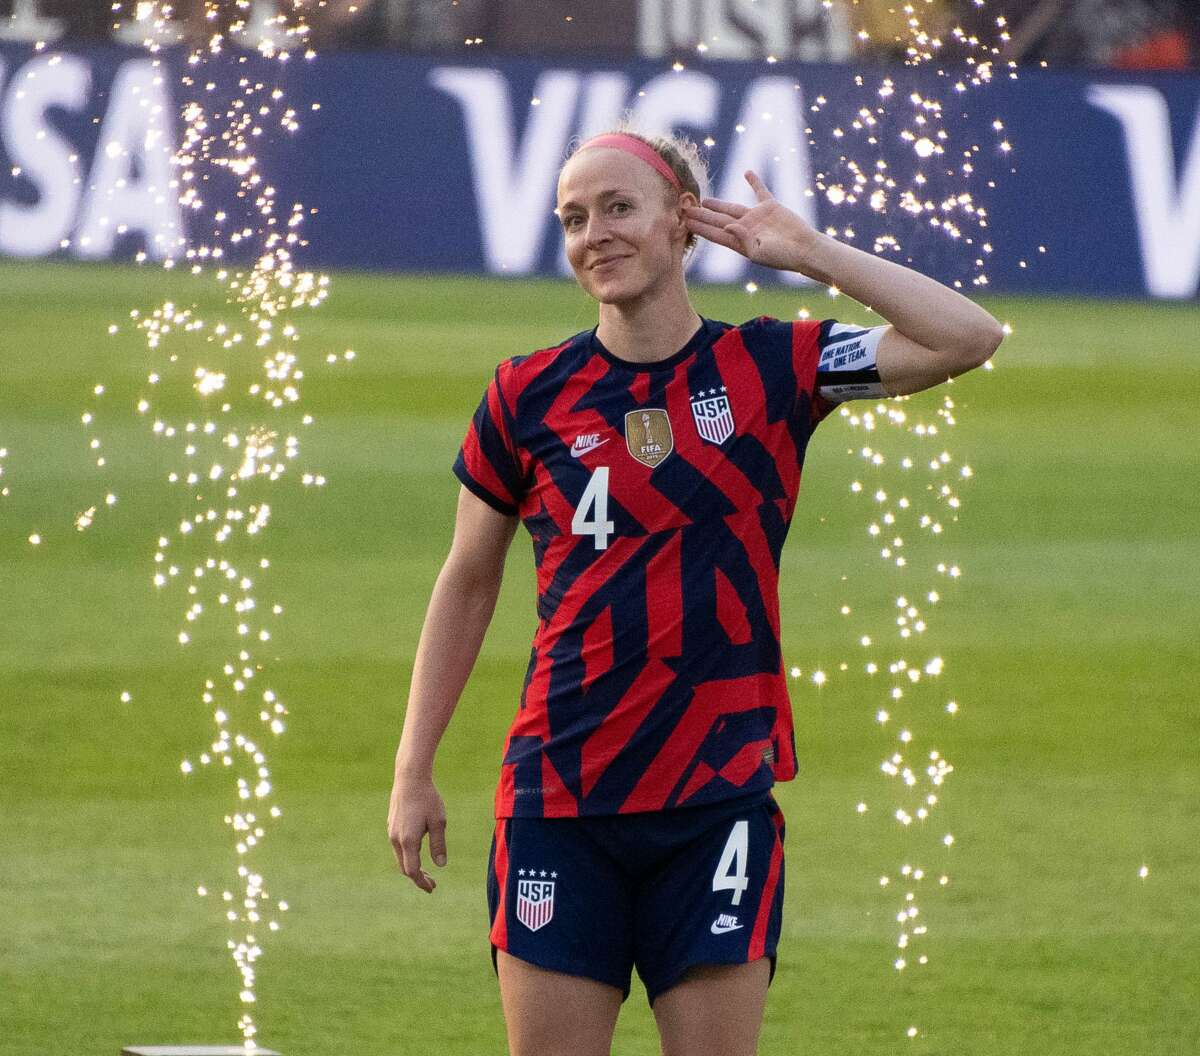 Team captain Becky Sauerbrunn of the US Women's Soccer National Team during a Send-Off ceremony at Pratt & Whitney Stadium in East Hartford, Conn. after a match against Mexico on Monday, July 5, 2021. The U.S. won 4-0 over Mexico. (Joyce Bassett / Special to the Times Union)